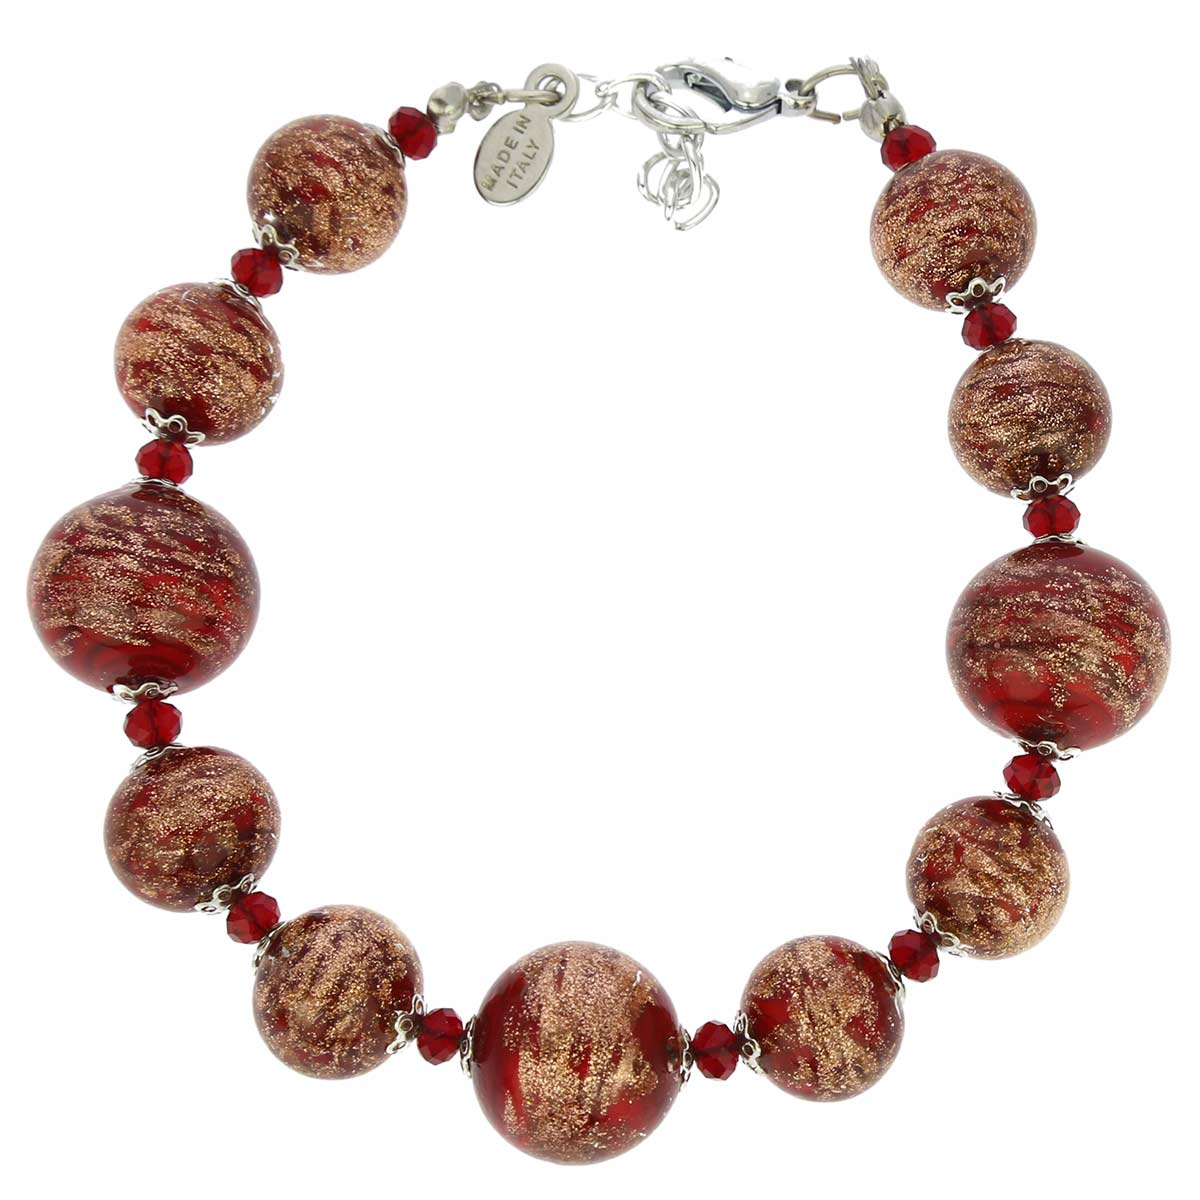 Starlight Balls Murano Bracelet - Red